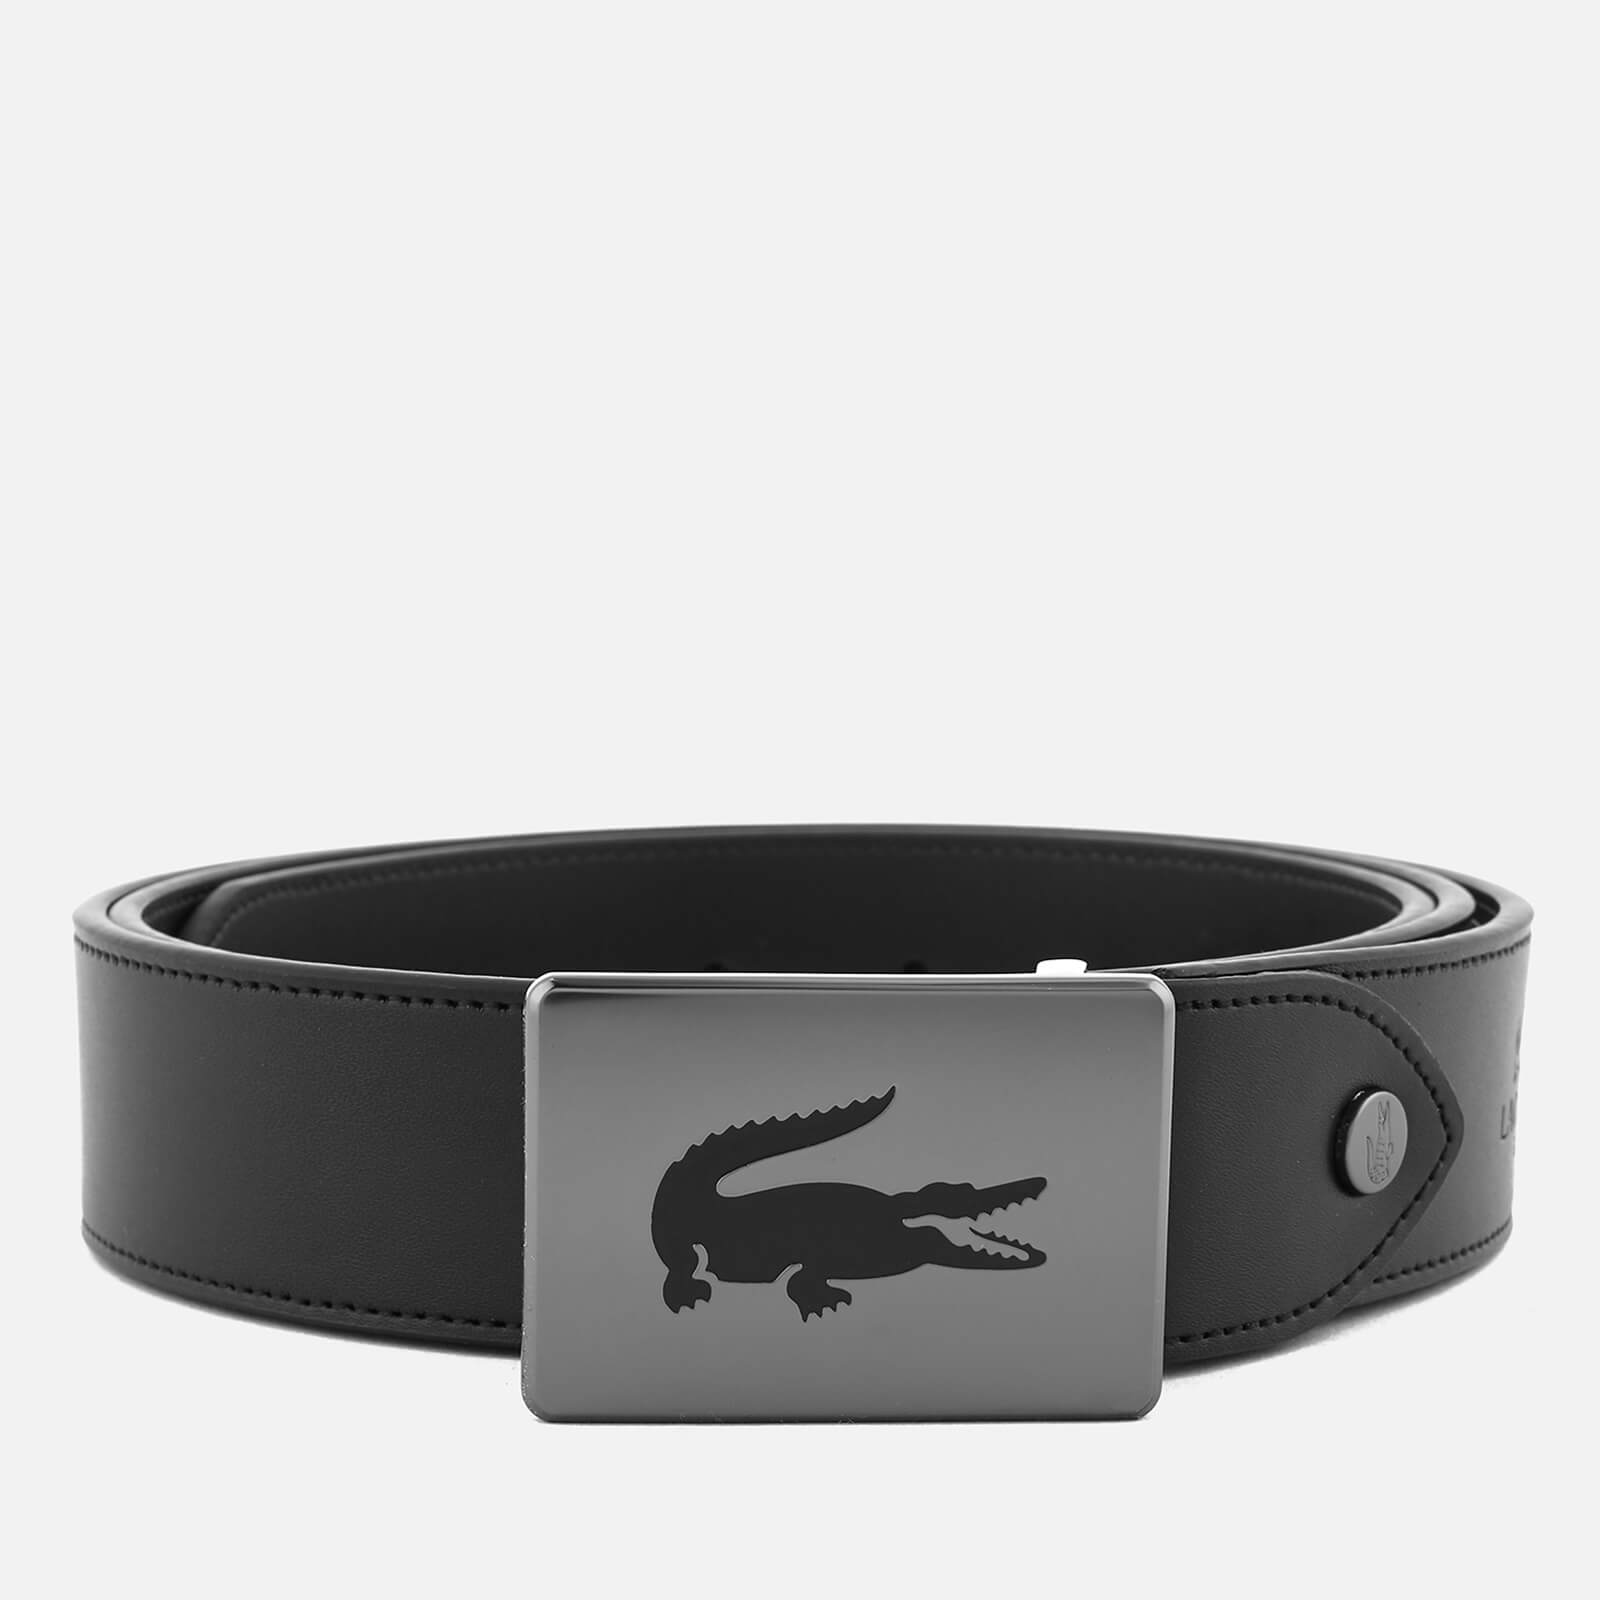 eaa7775e612708 Lacoste Men s Sportswear Canvas Leather Mix Belt - Black Brown - Free UK  Delivery over £50